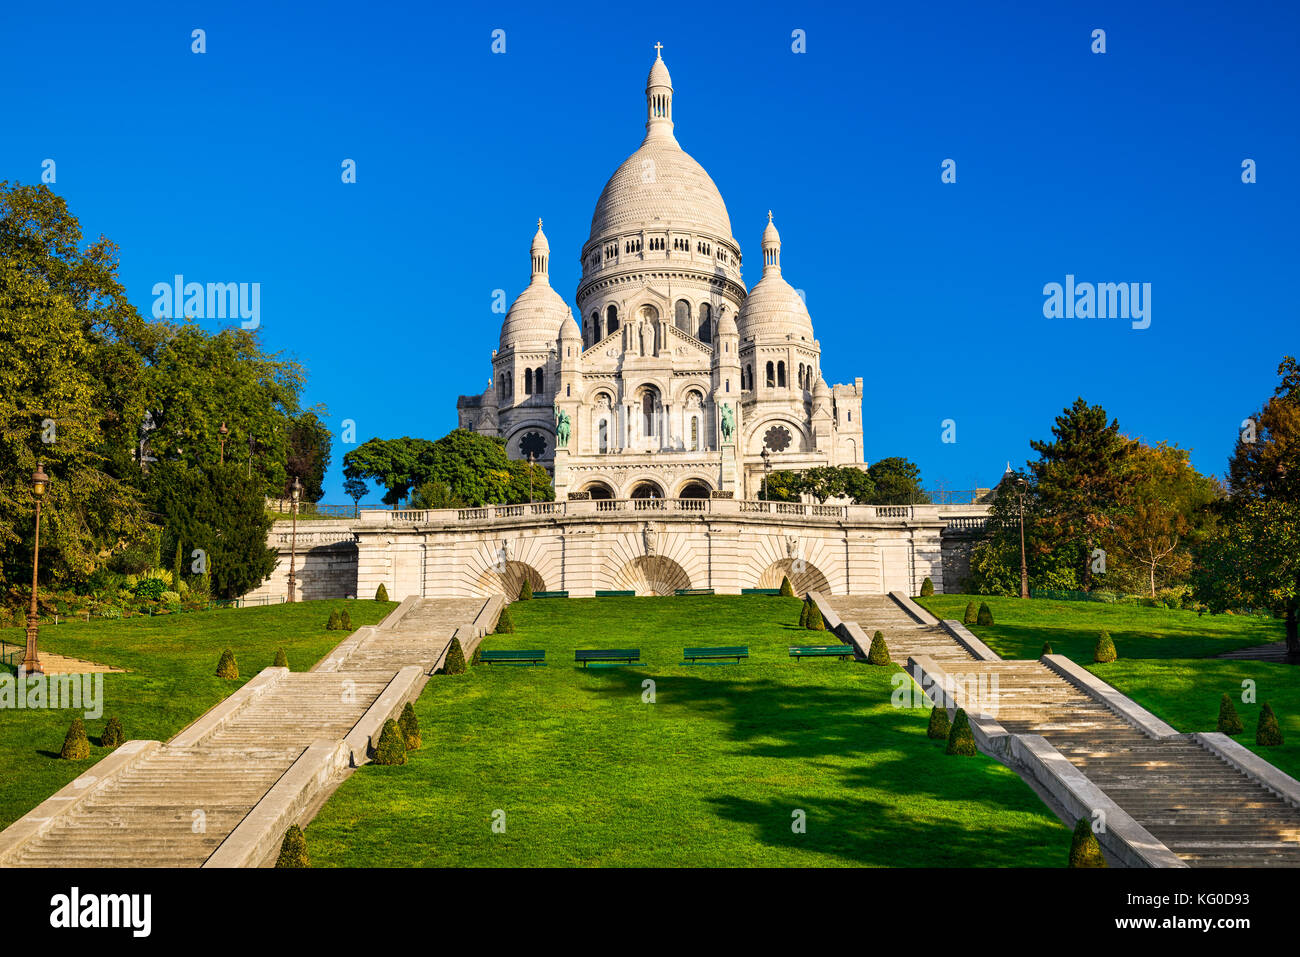 Basilica Sacre Coeur in Montmartre in Paris, France - Stock Image